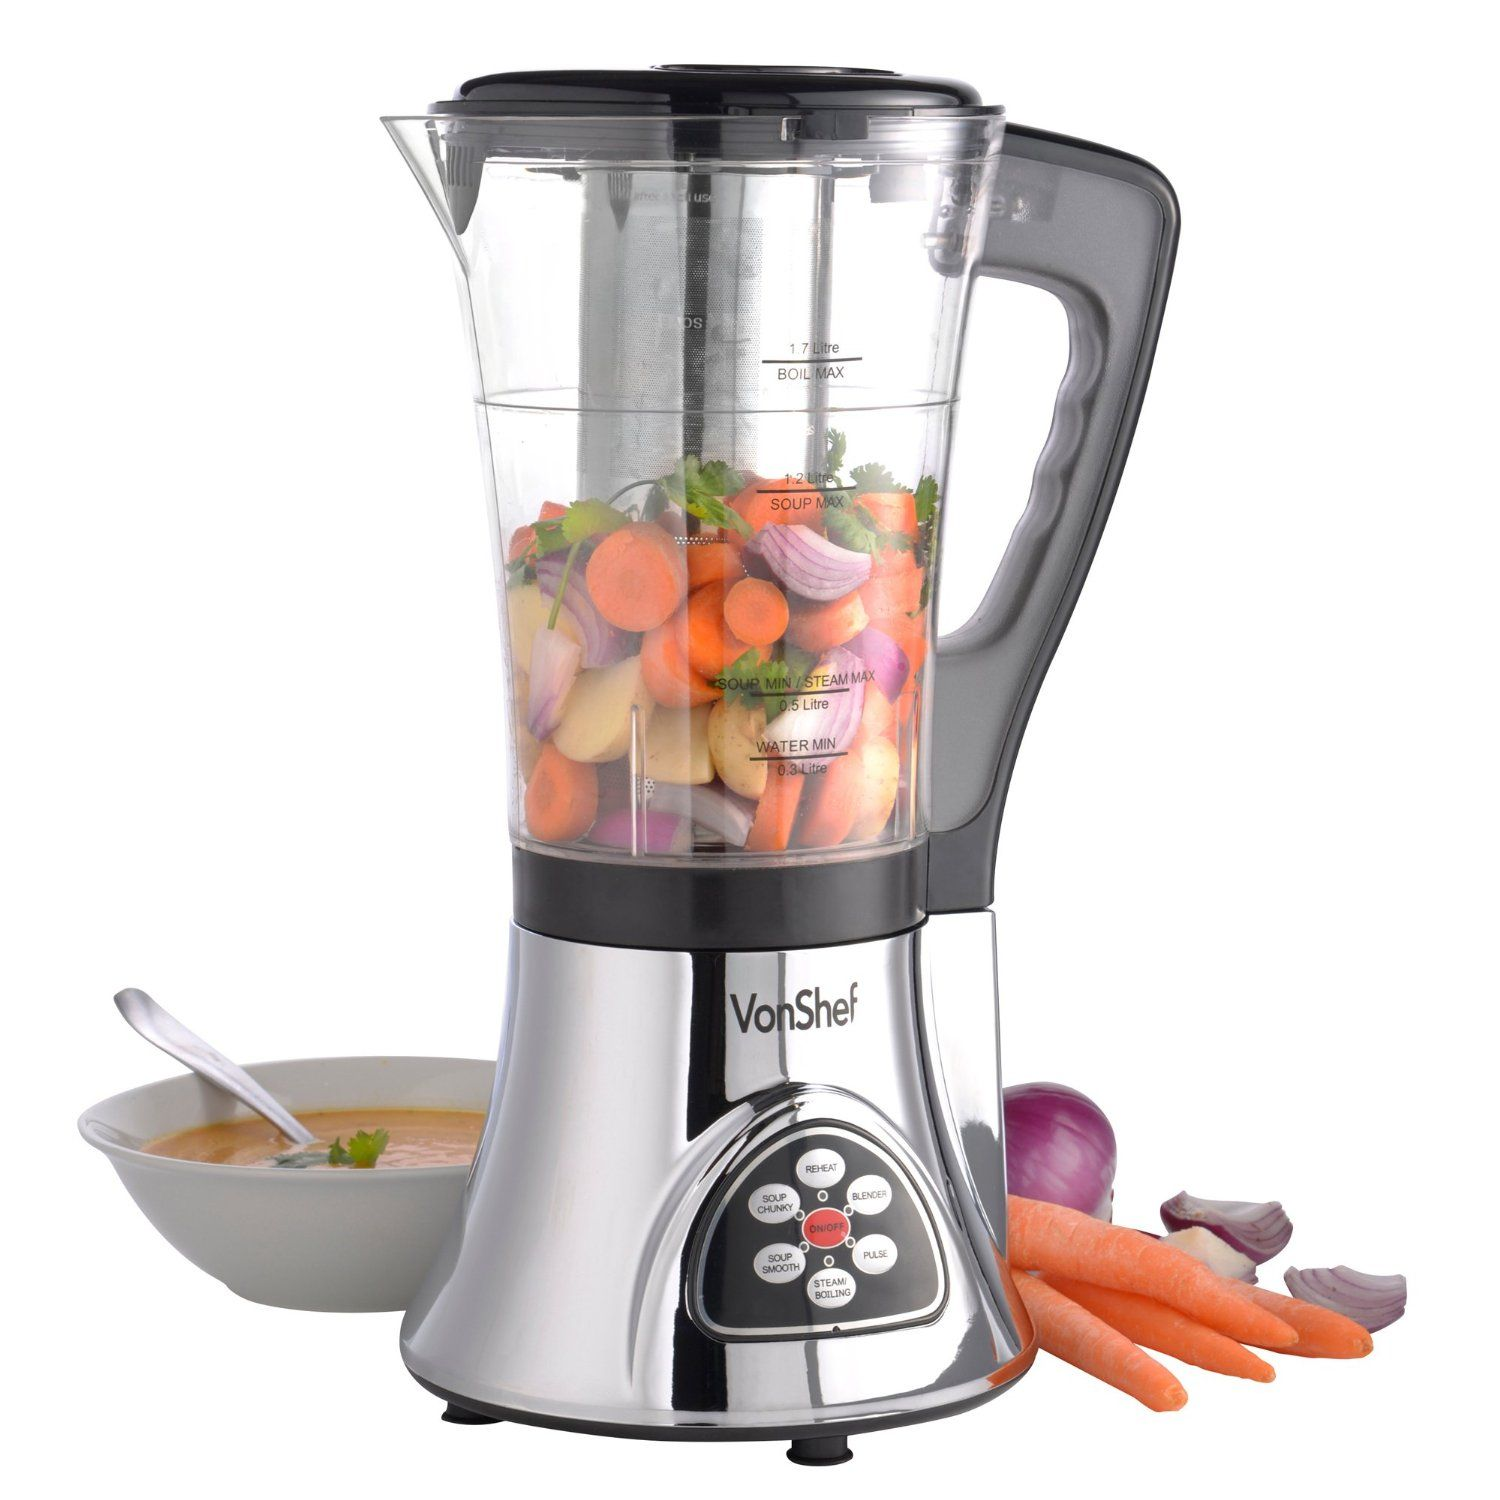 Vonshef soup maker machine smoothie maker with 200 super soups vonshef soup maker machine smoothie maker with 200 super soups recipe book amazon forumfinder Gallery